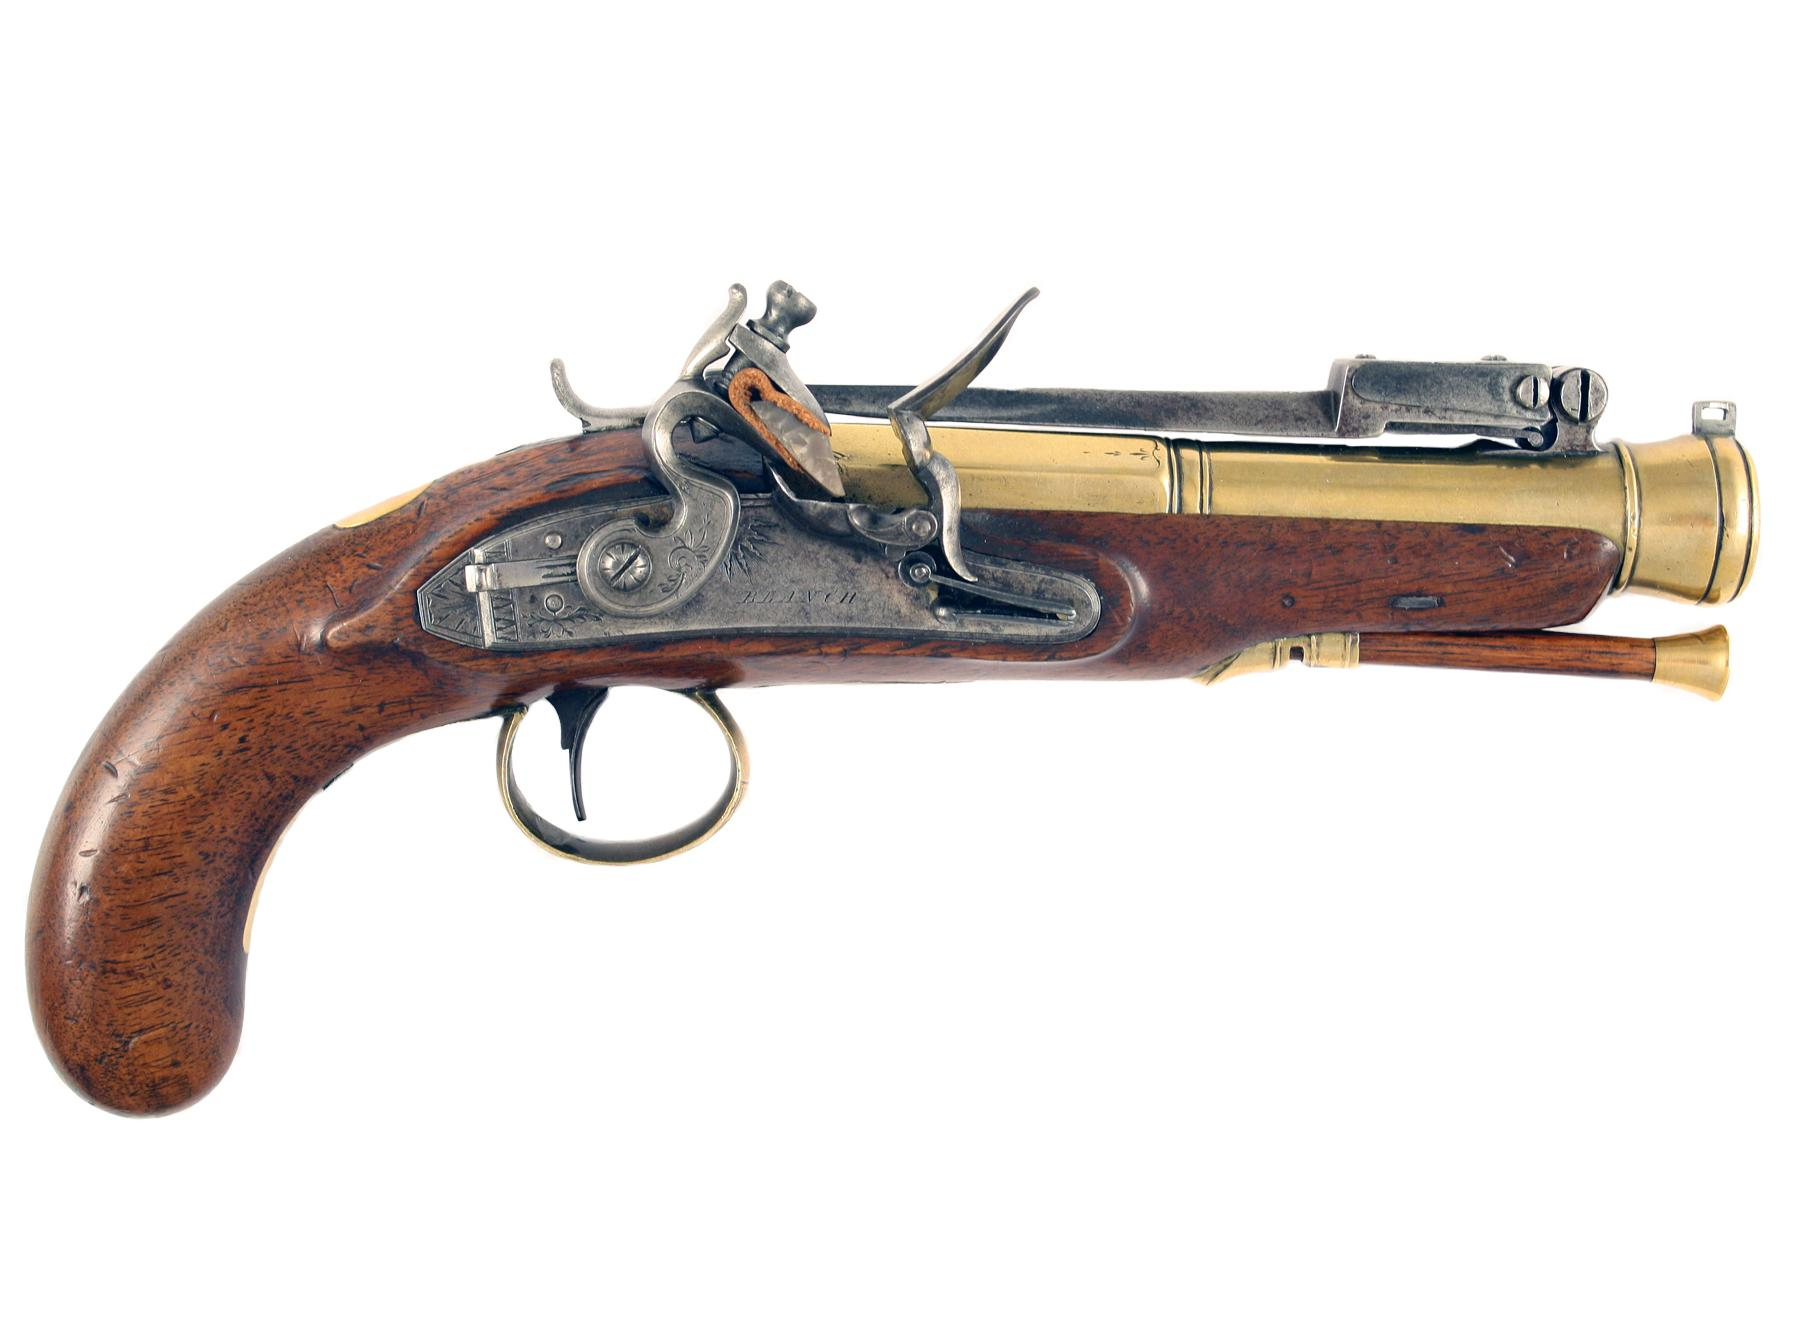 A Superb Blunderbuss Pistol